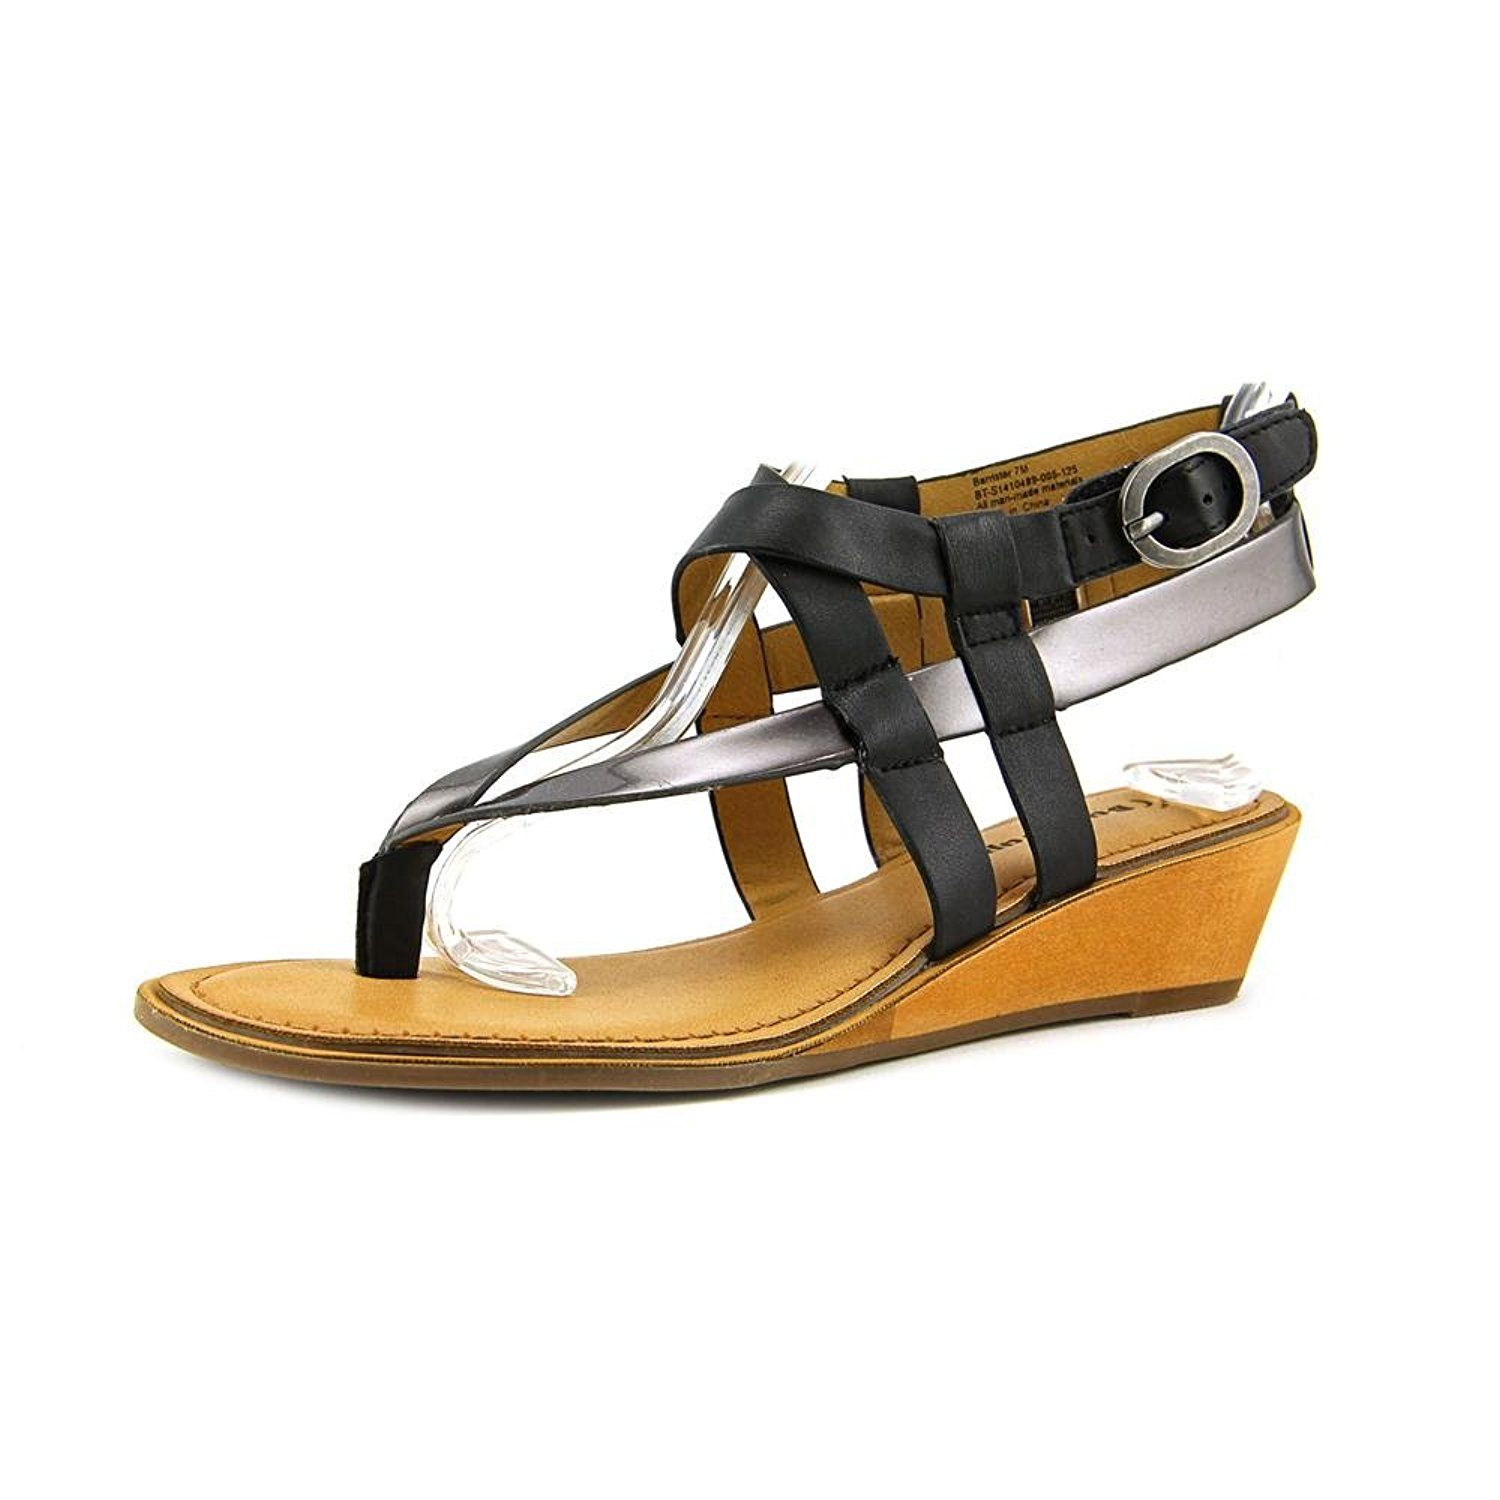 2782650b0026 BareTraps Barrister Women s Sandals Black Pewter Size 8.5 M (BT21784)    Stop everything and read more details here!   Strappy sandals